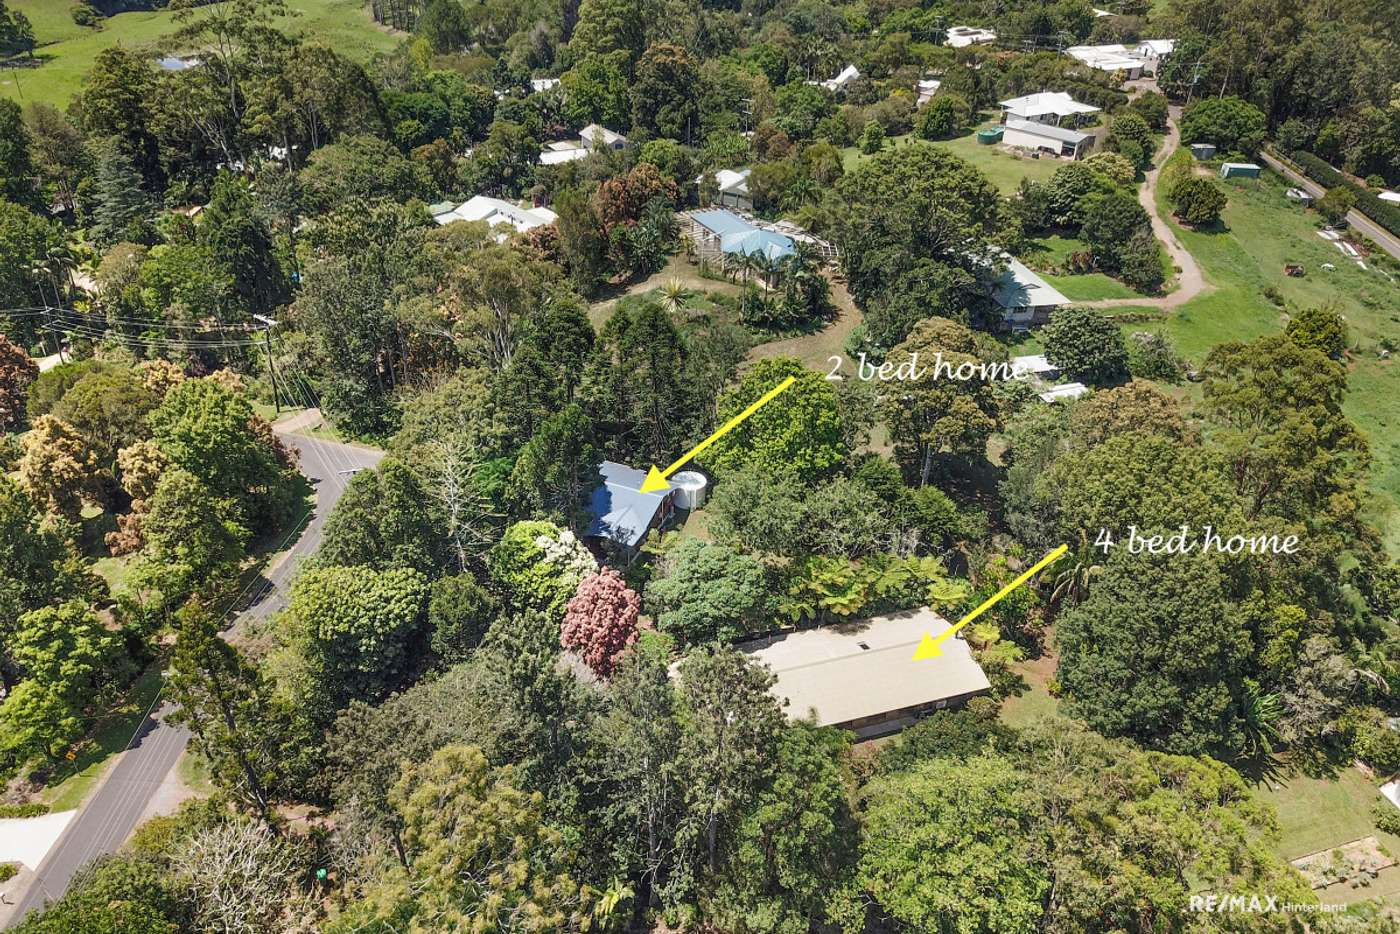 Main view of Homely house listing, 13 Treehaven Way, Maleny QLD 4552